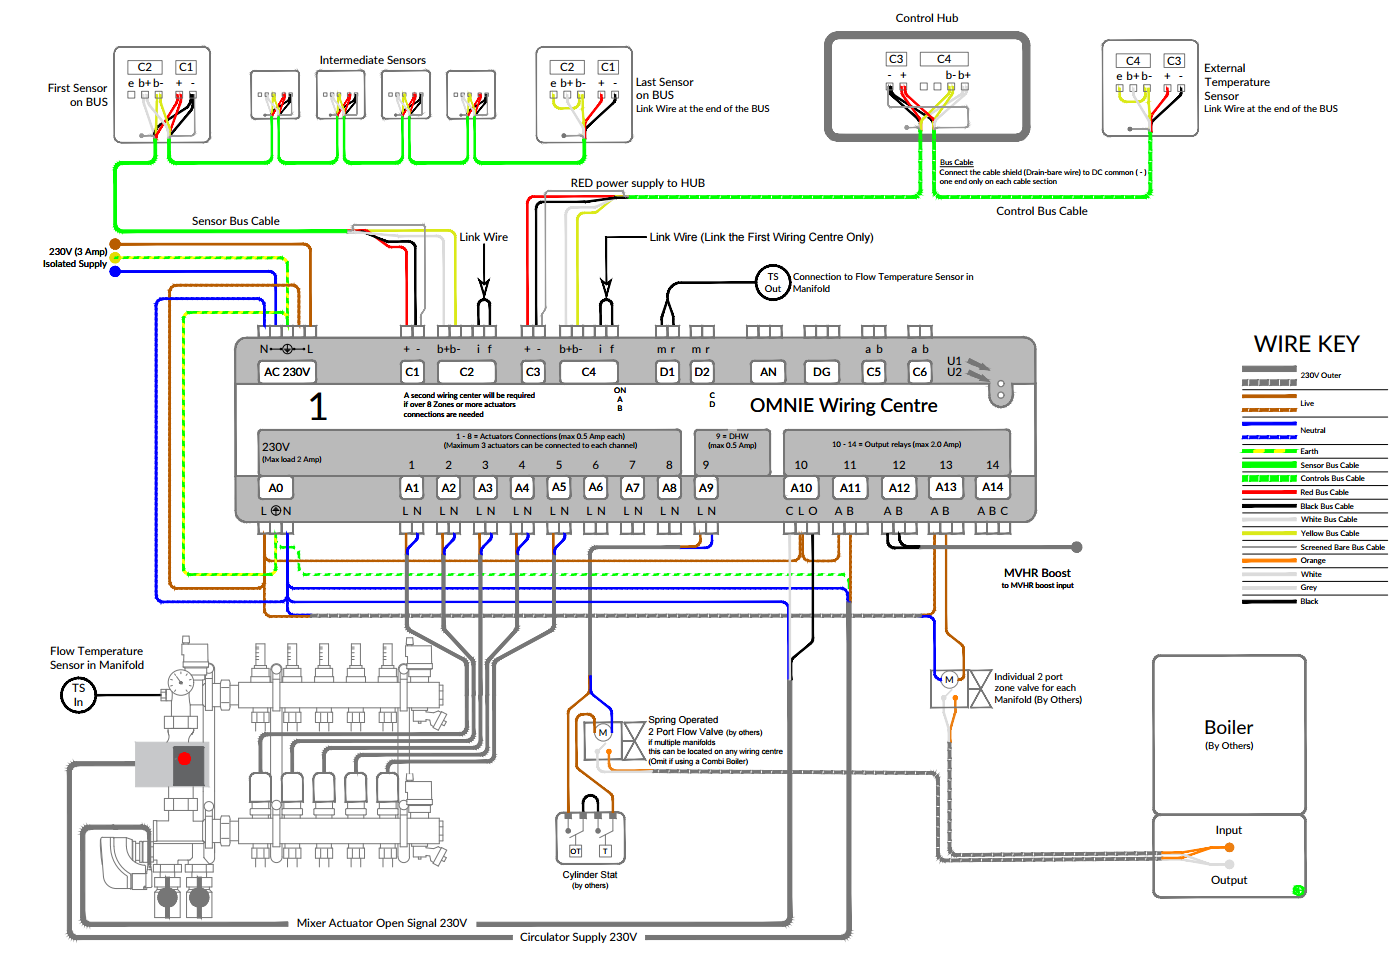 Ideal Boiler User Manual Wiring Diagram Master Blogs Logic Link Controls Library System 30